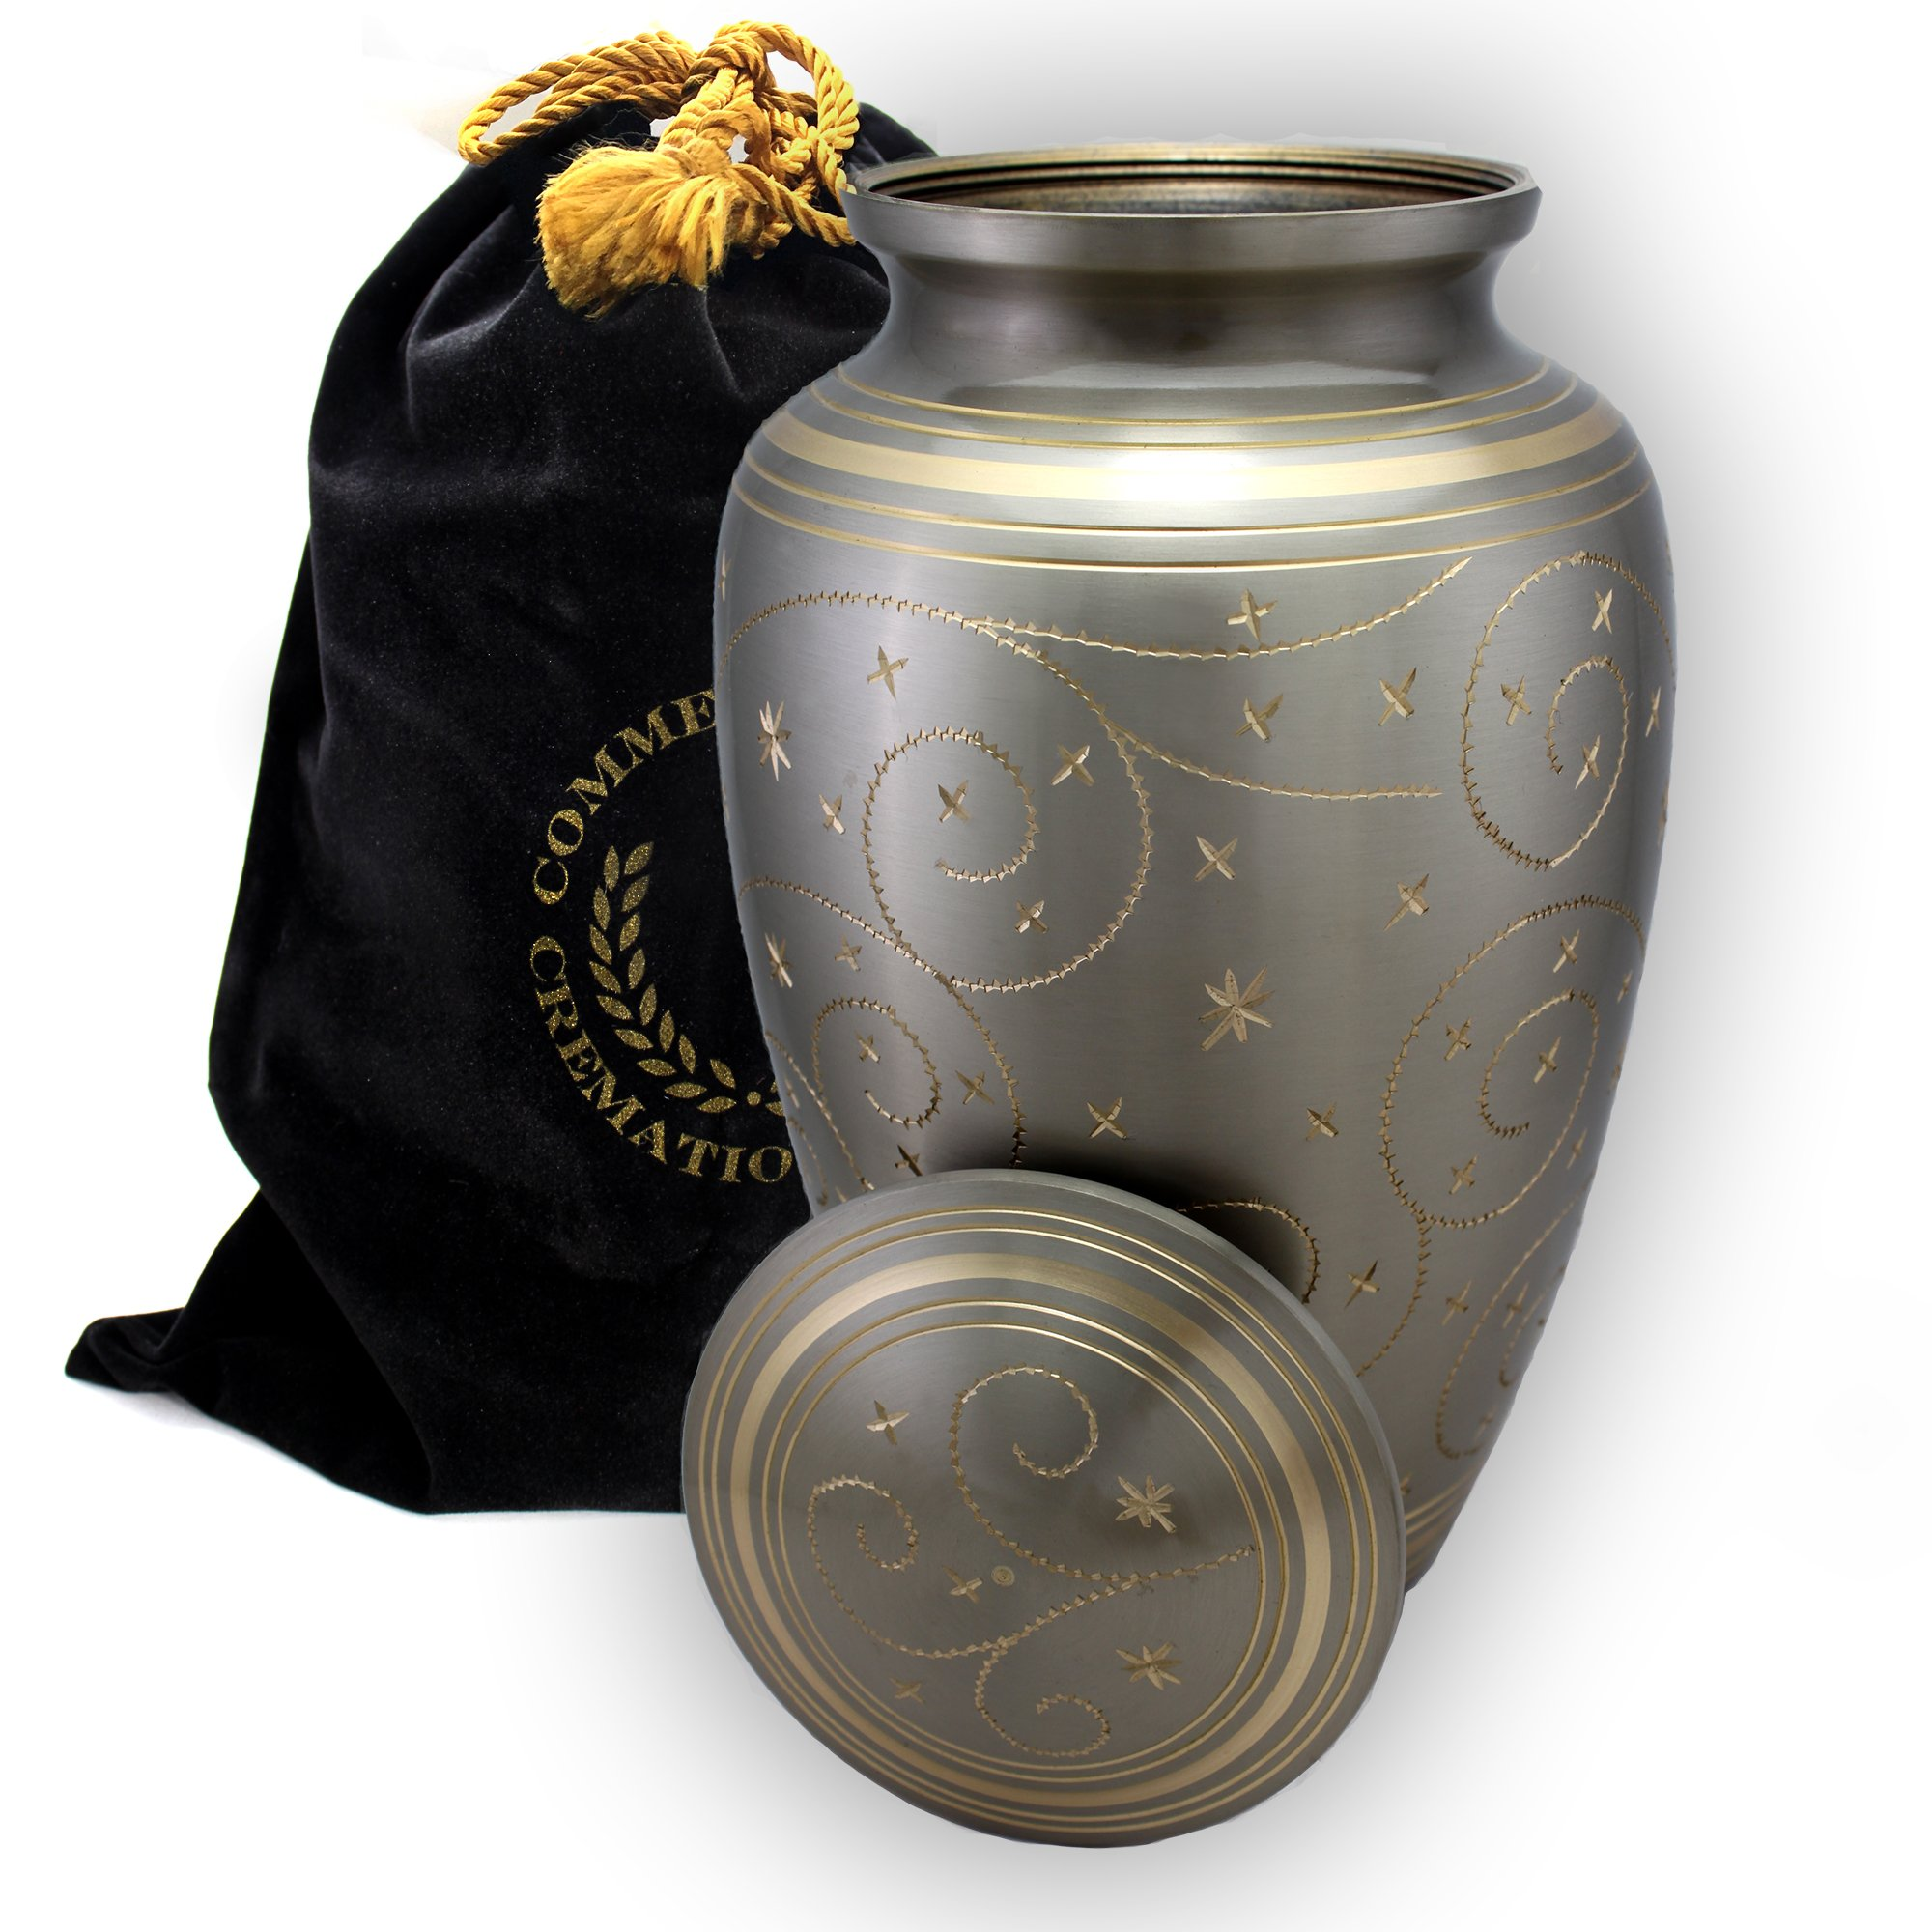 Star Light Brass Metal Funeral Cremation Urn for Human Ashes (Large) by Commemorative Cremation Urns (Image #4)